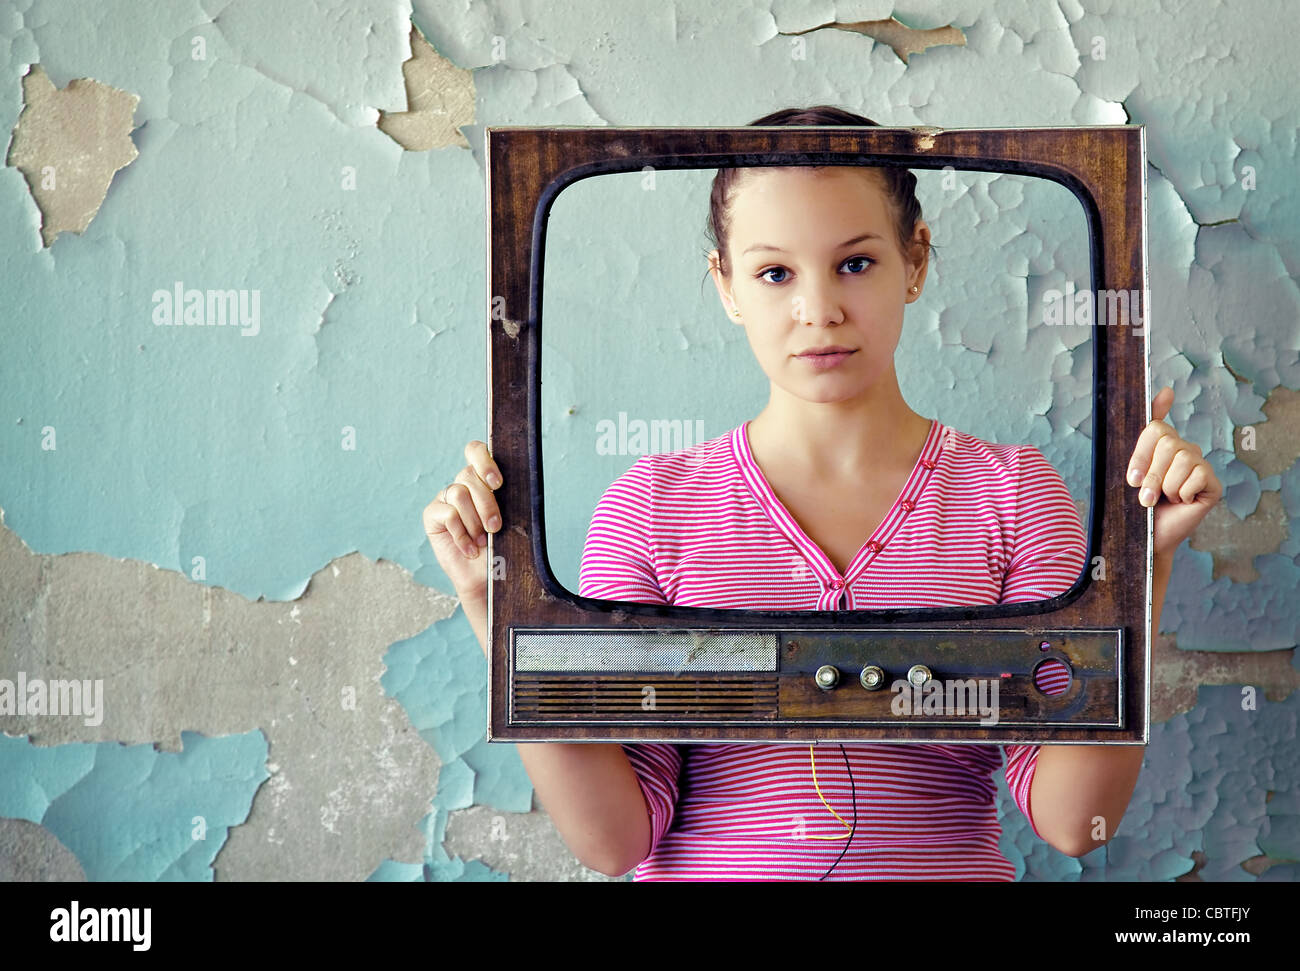 woman with old tv frame - Stock Image